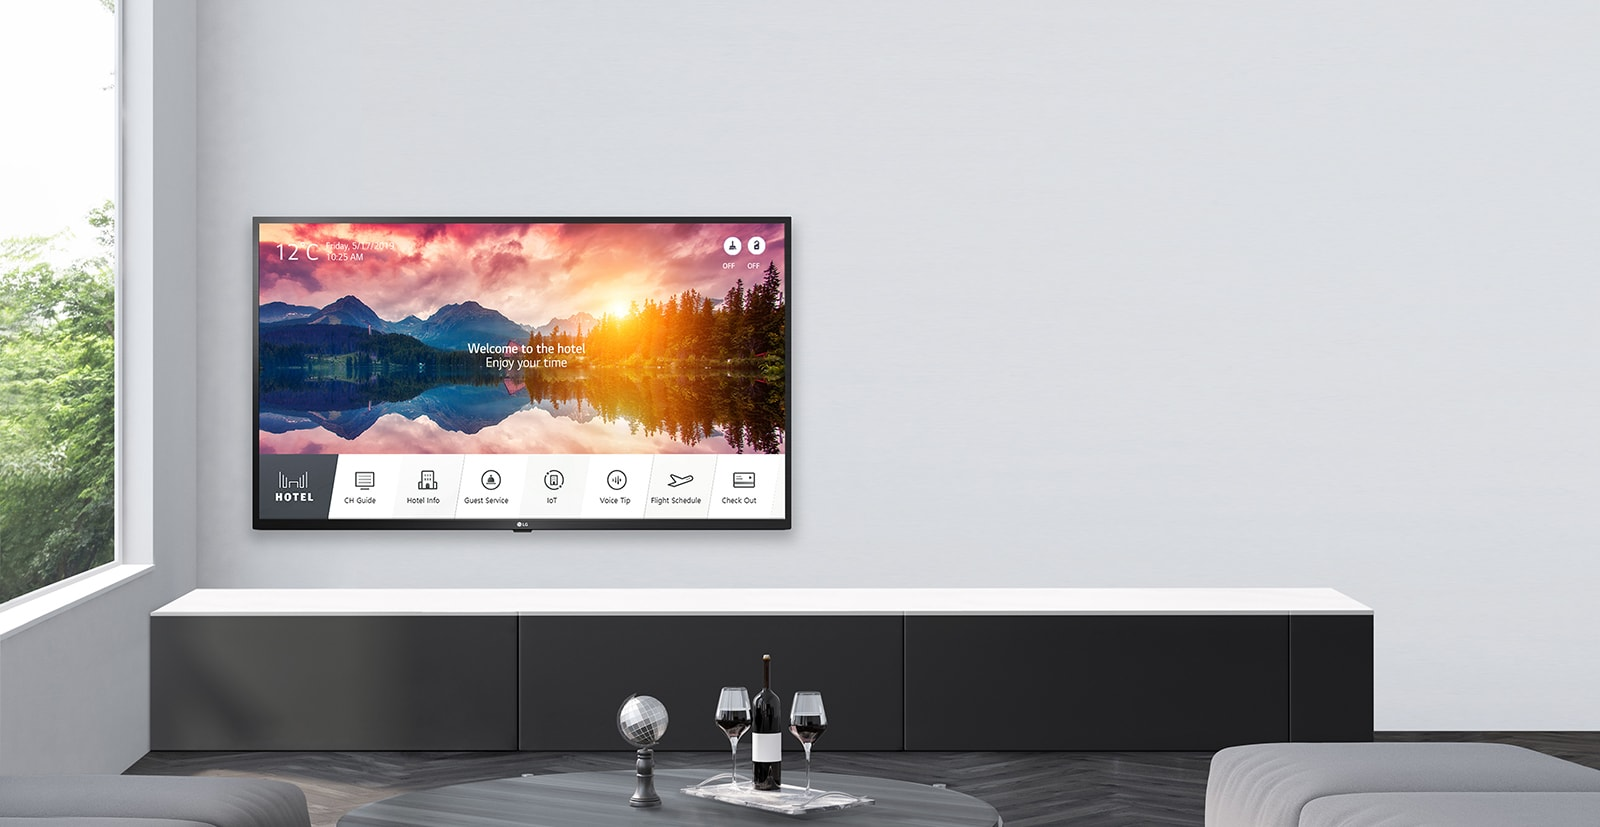 LG Smart Hotel TV with Effective Content Management